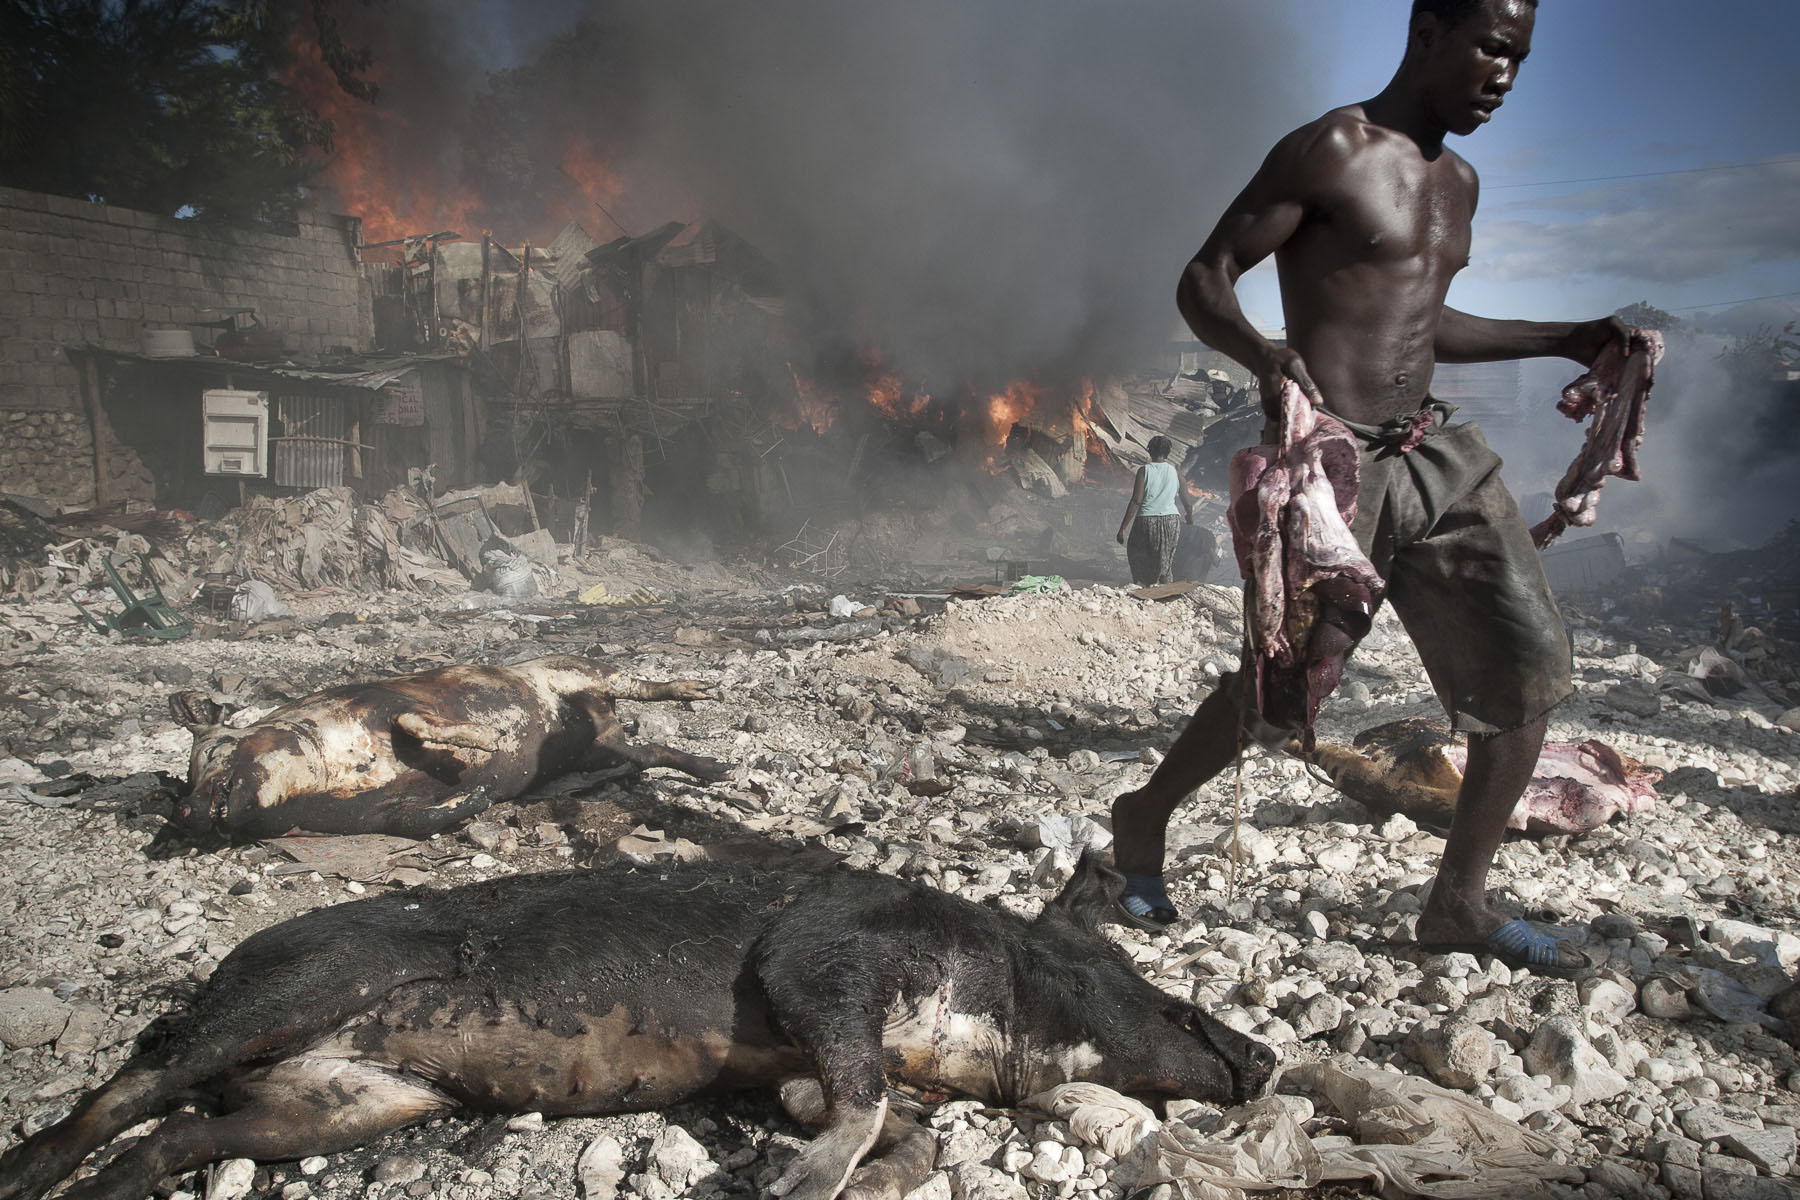 Fire at a pig seller's in Parc Charbon slums in November 2003